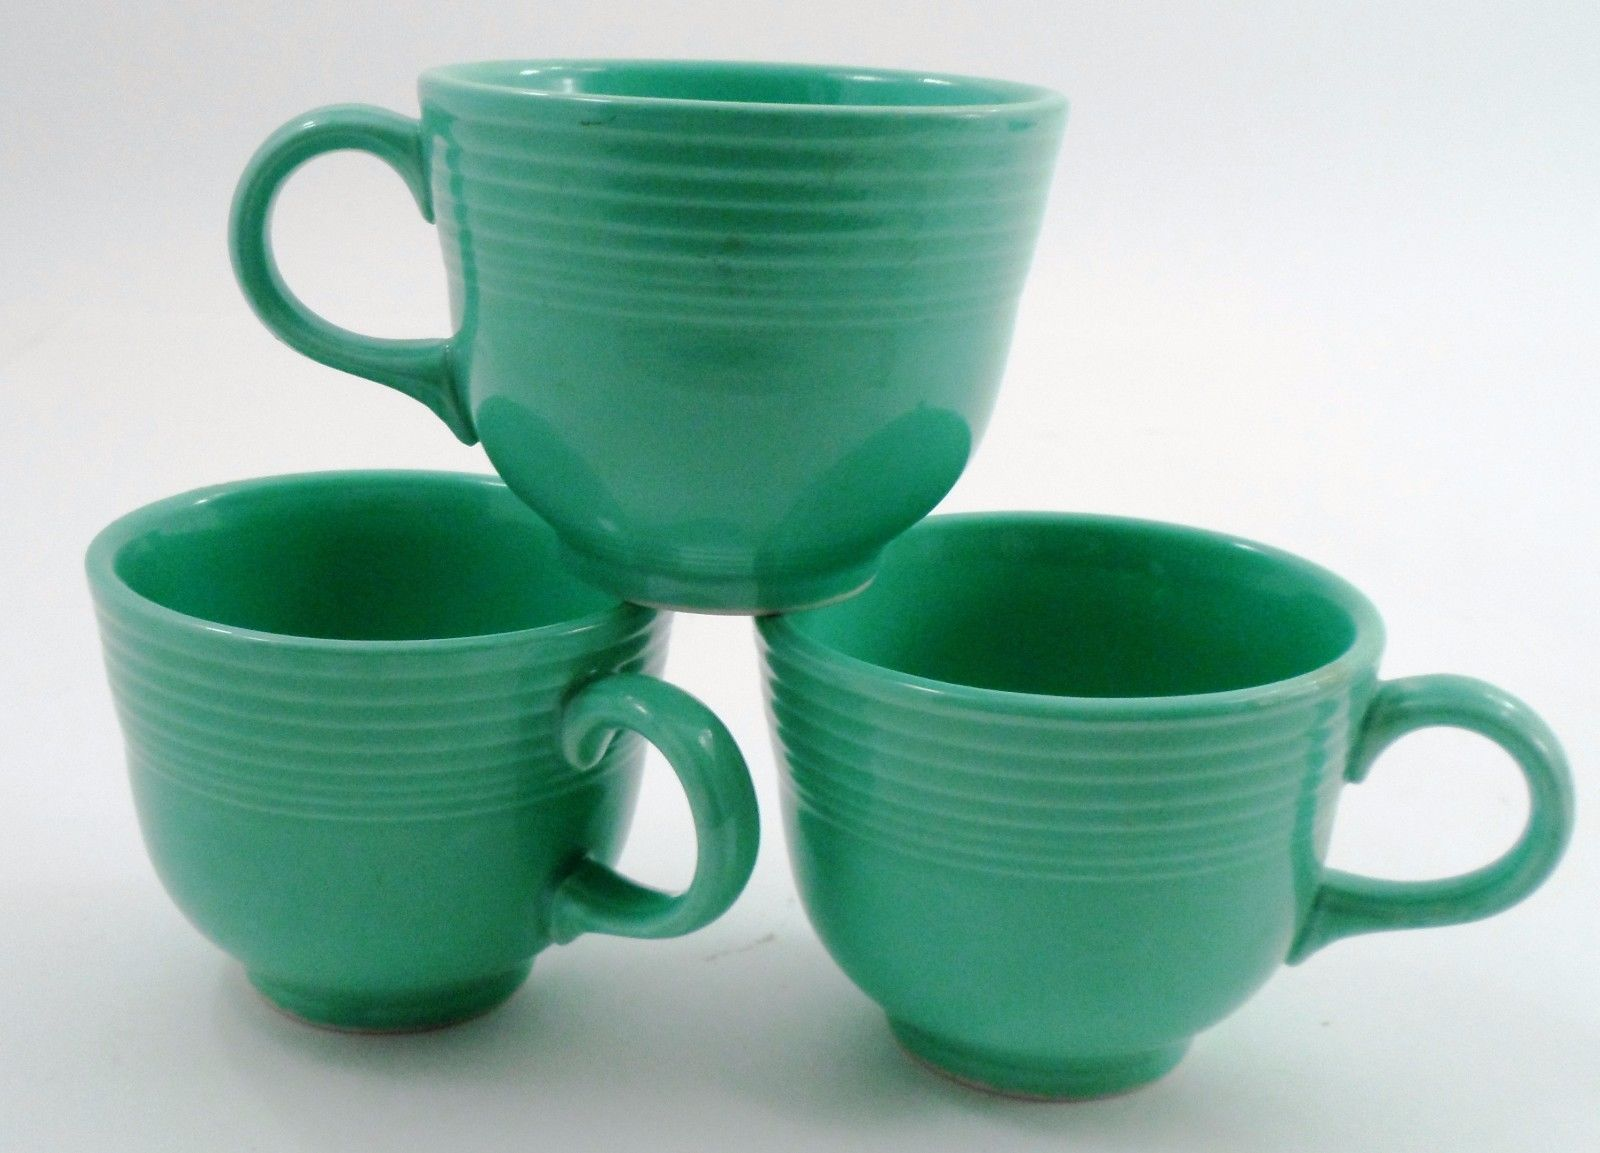 3 Clean EUC Homer Laughlin Fiesta Dinnerware Fiestaware Light Green Coffee Cups